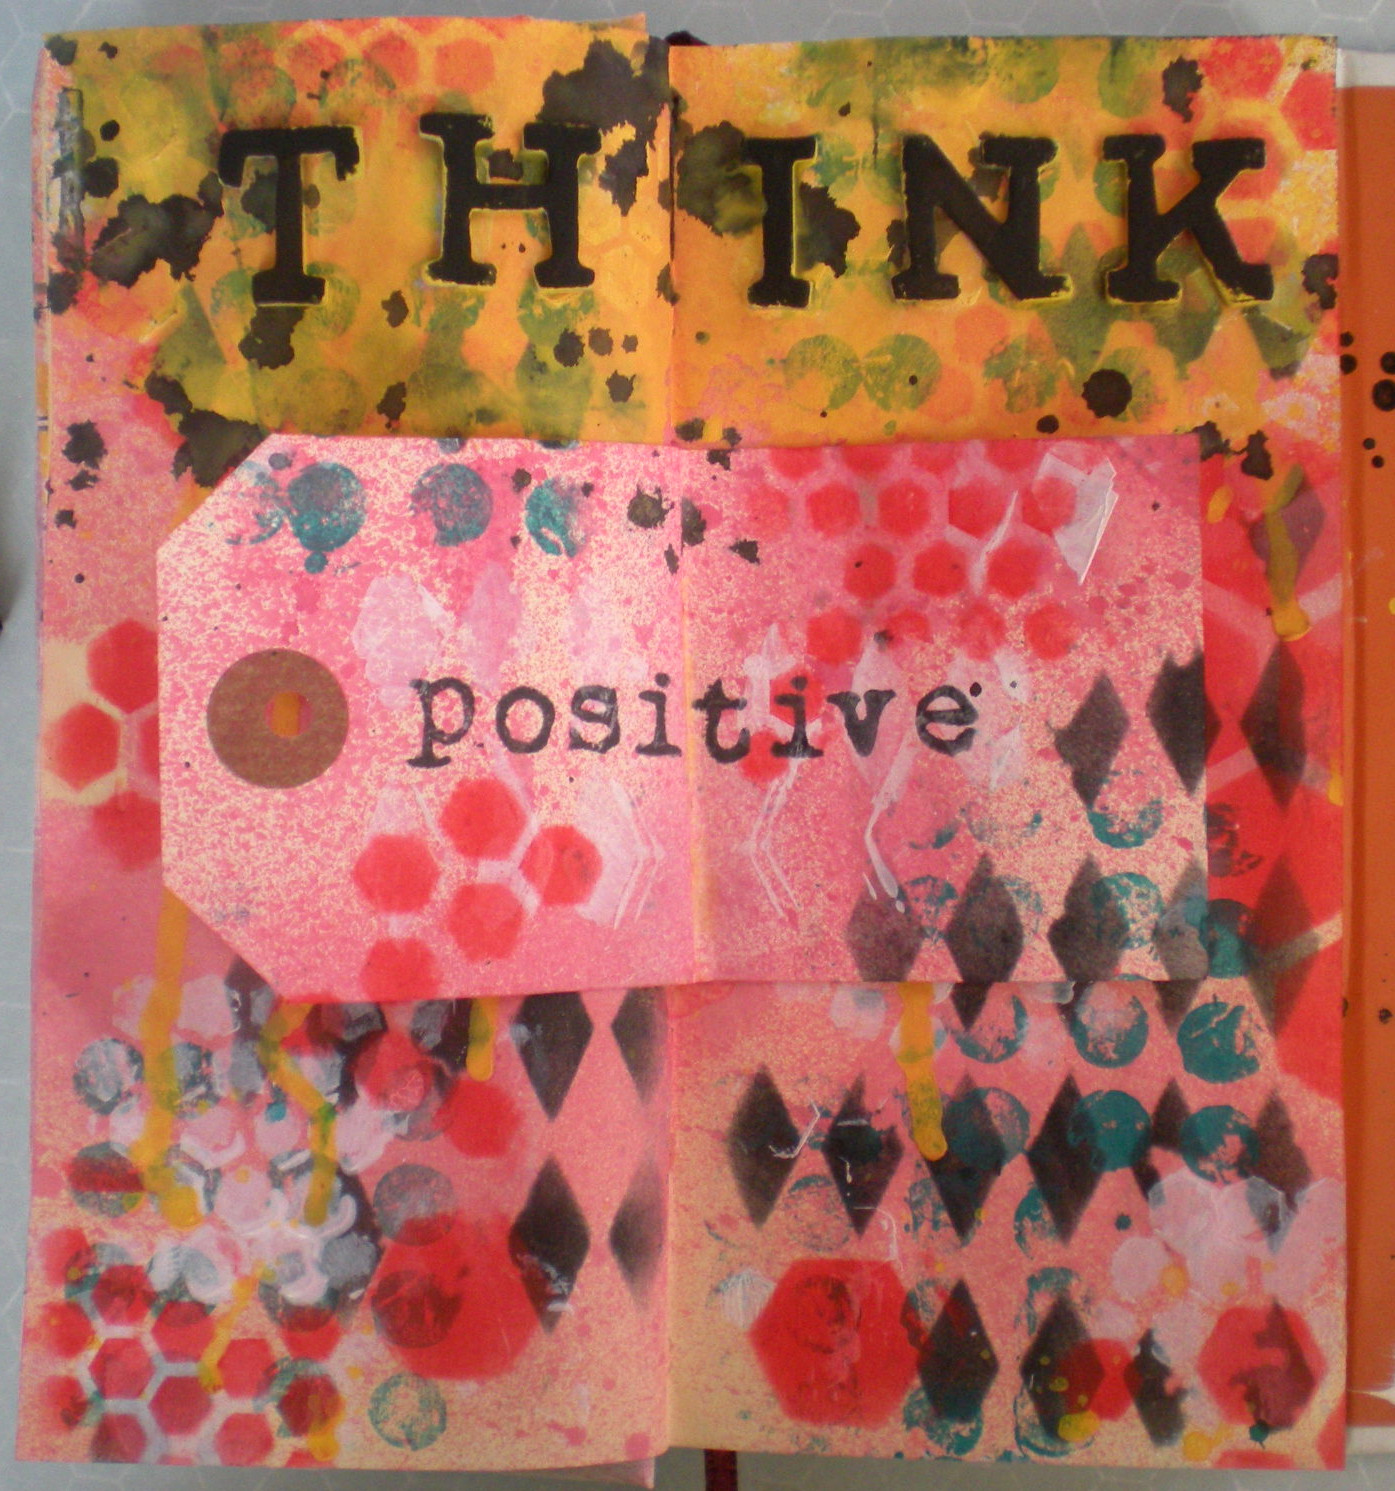 Piensa en positivo - Think positive